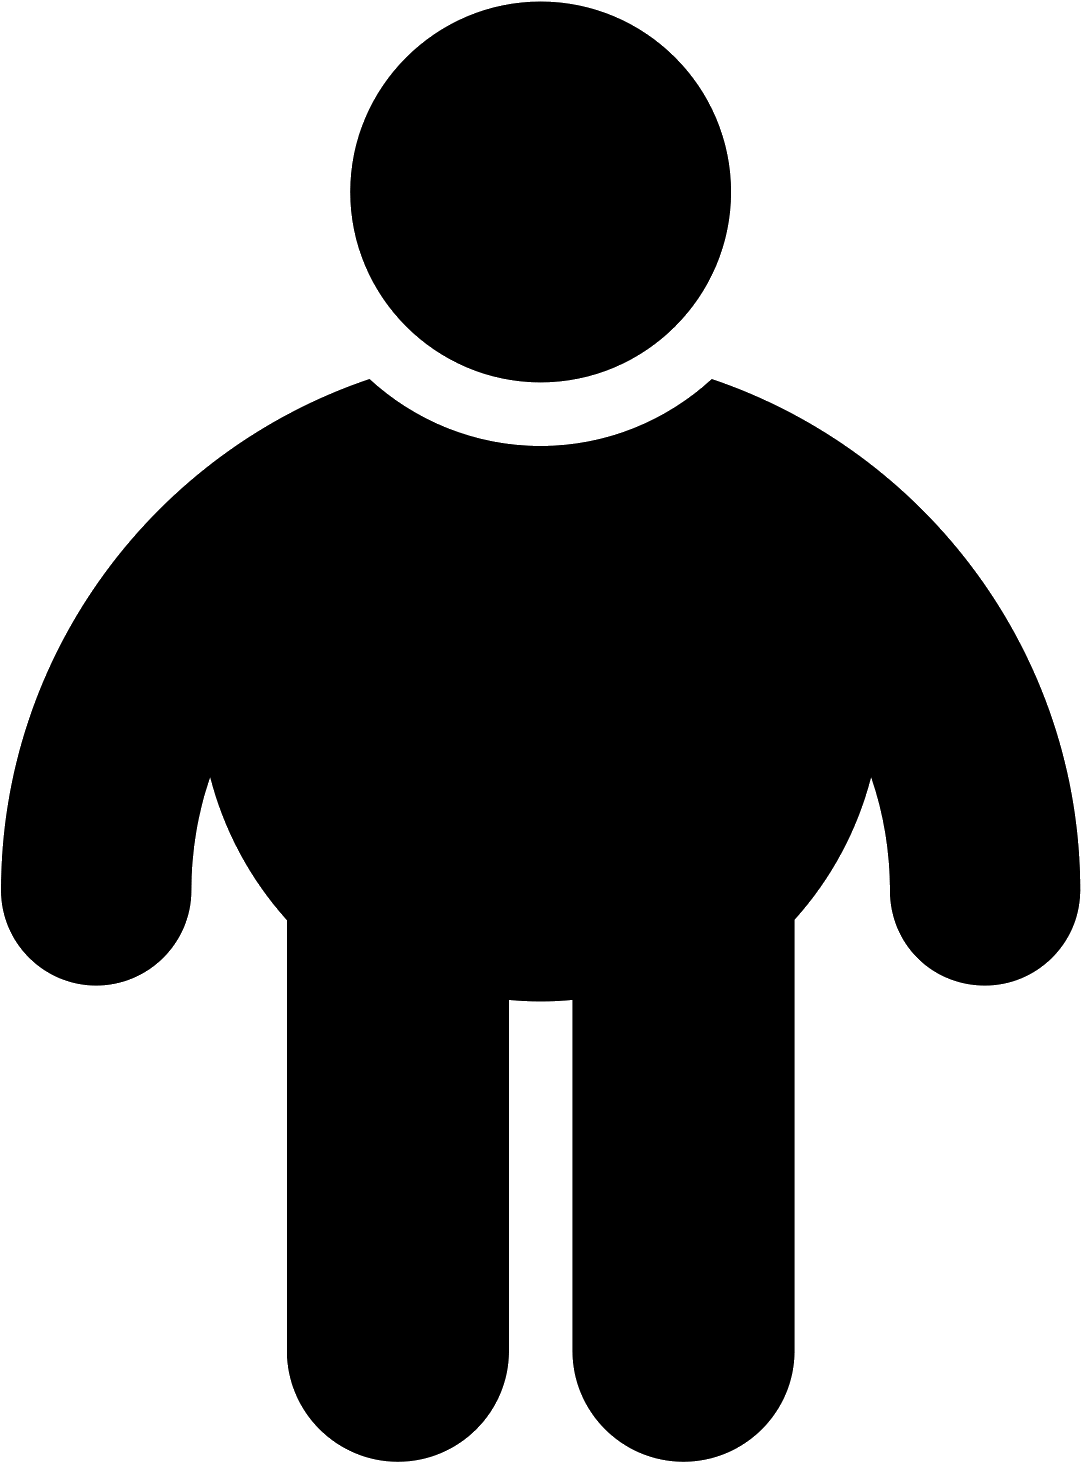 hight resolution of fat man filled icon person standing icon png clipart 1600x1600 png download